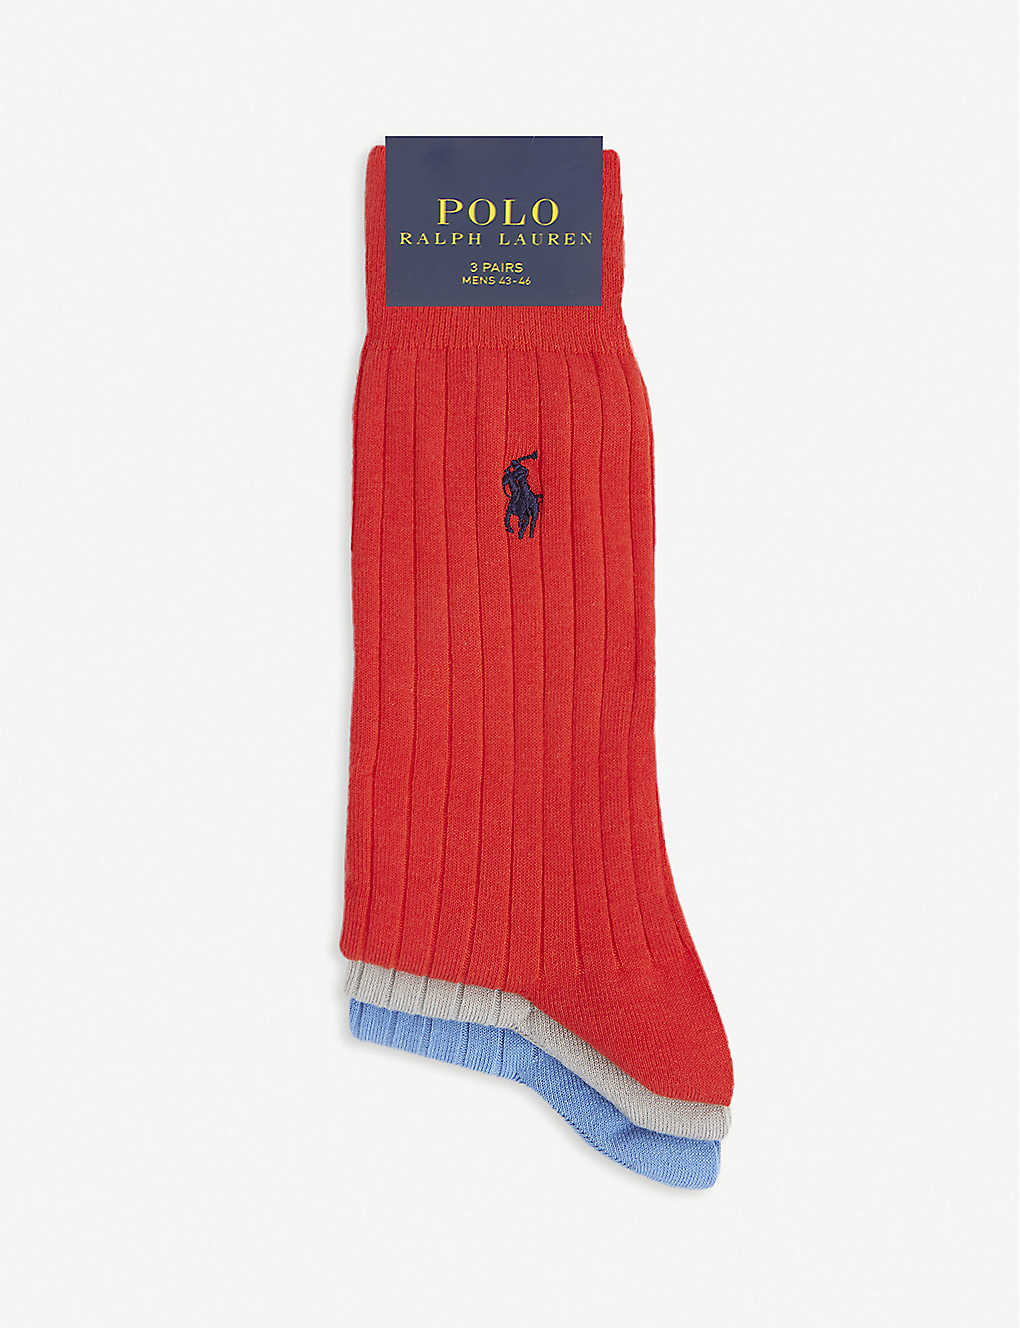 POLO RALPH LAUREN: Ribbed logo-embossed cotton socks pack of three